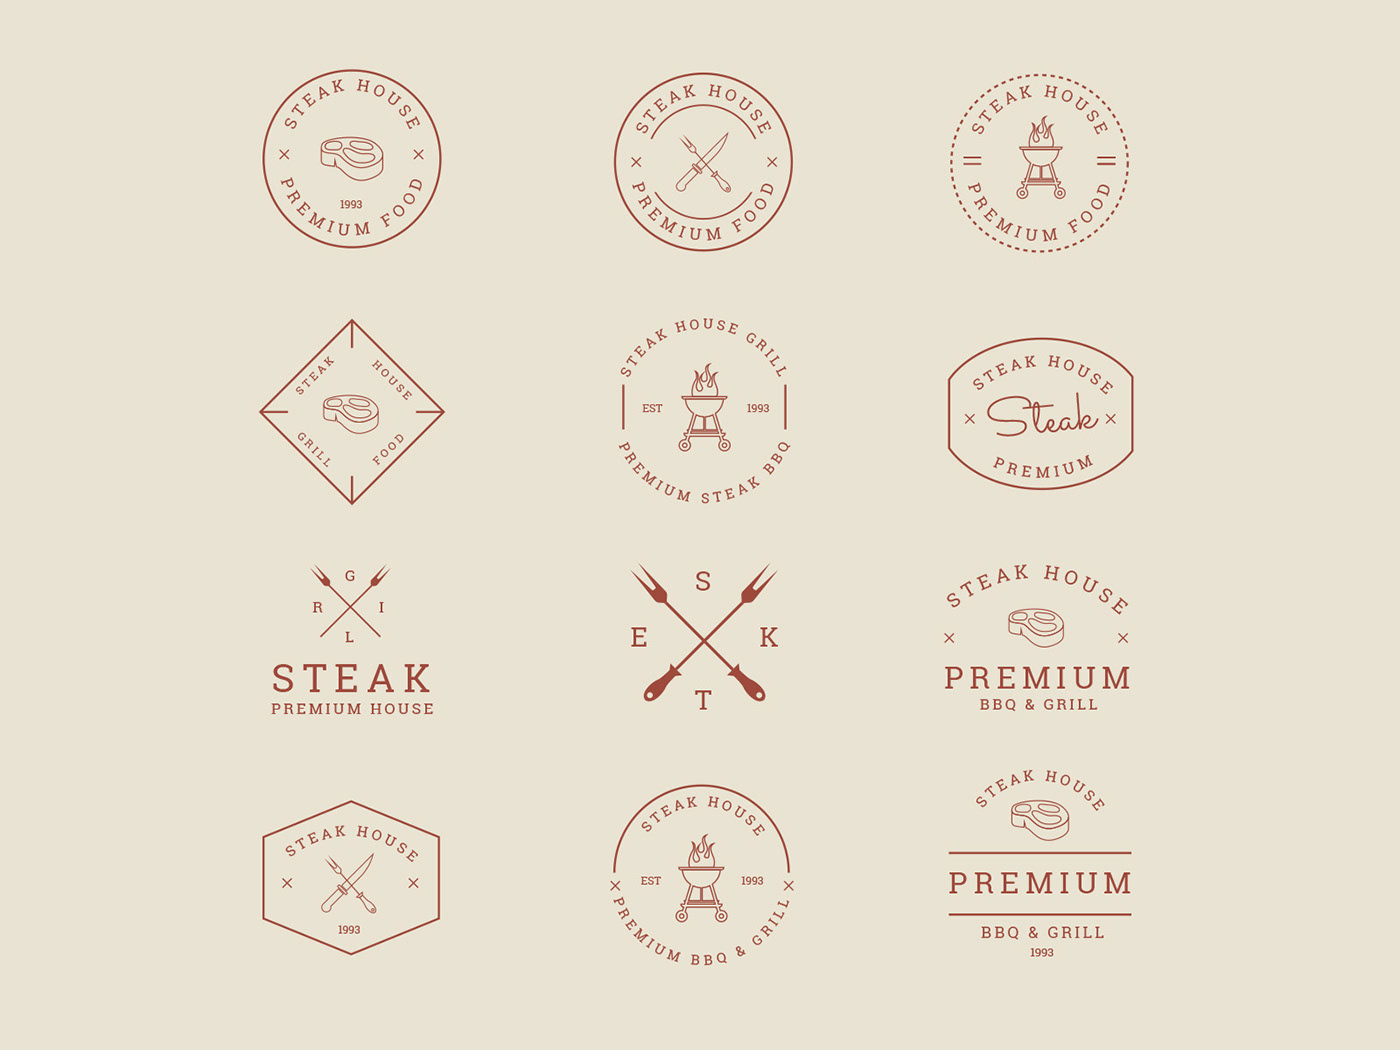 bbq badge bbq icon bbq vector freebie grill icon design  icons download icons pack icons set vector icon